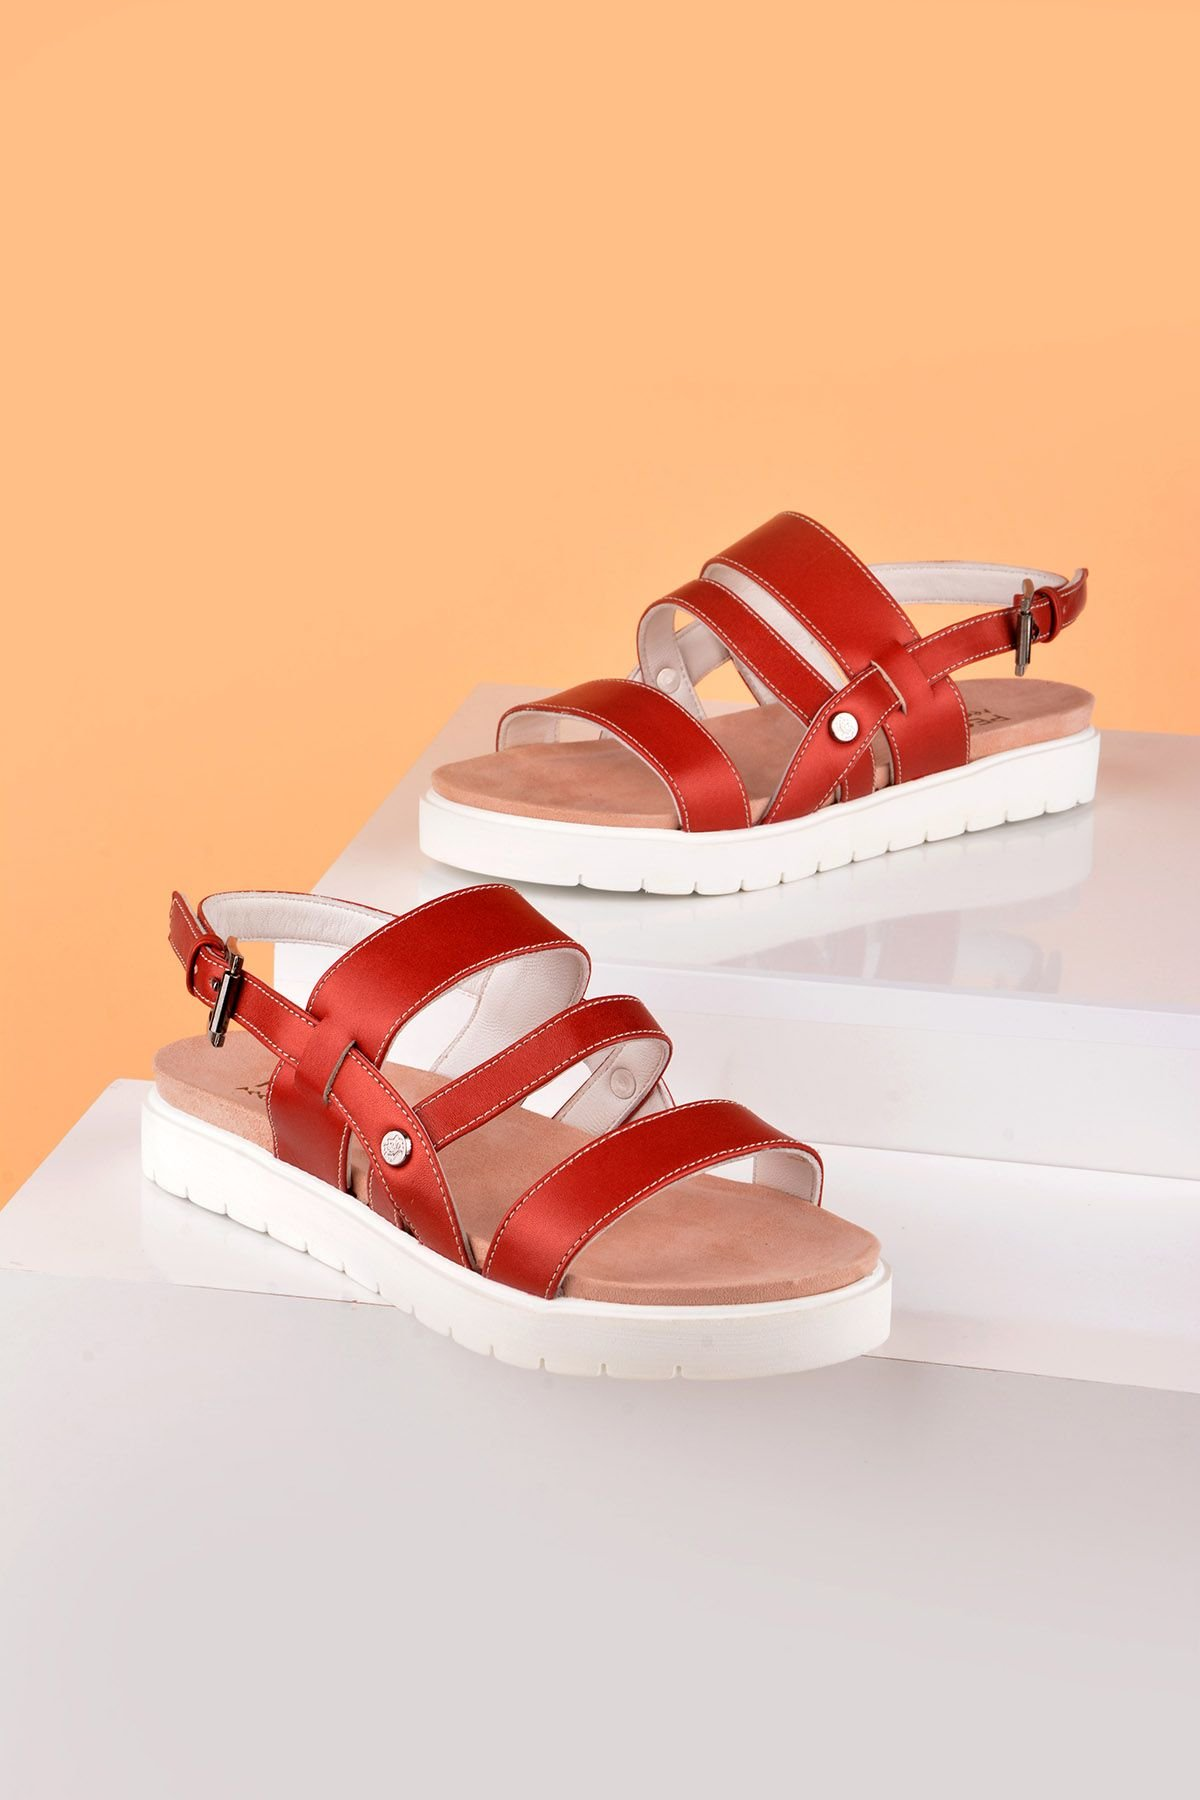 Pegia Gabrielle Women Sandals From Genuine Leather Claret red